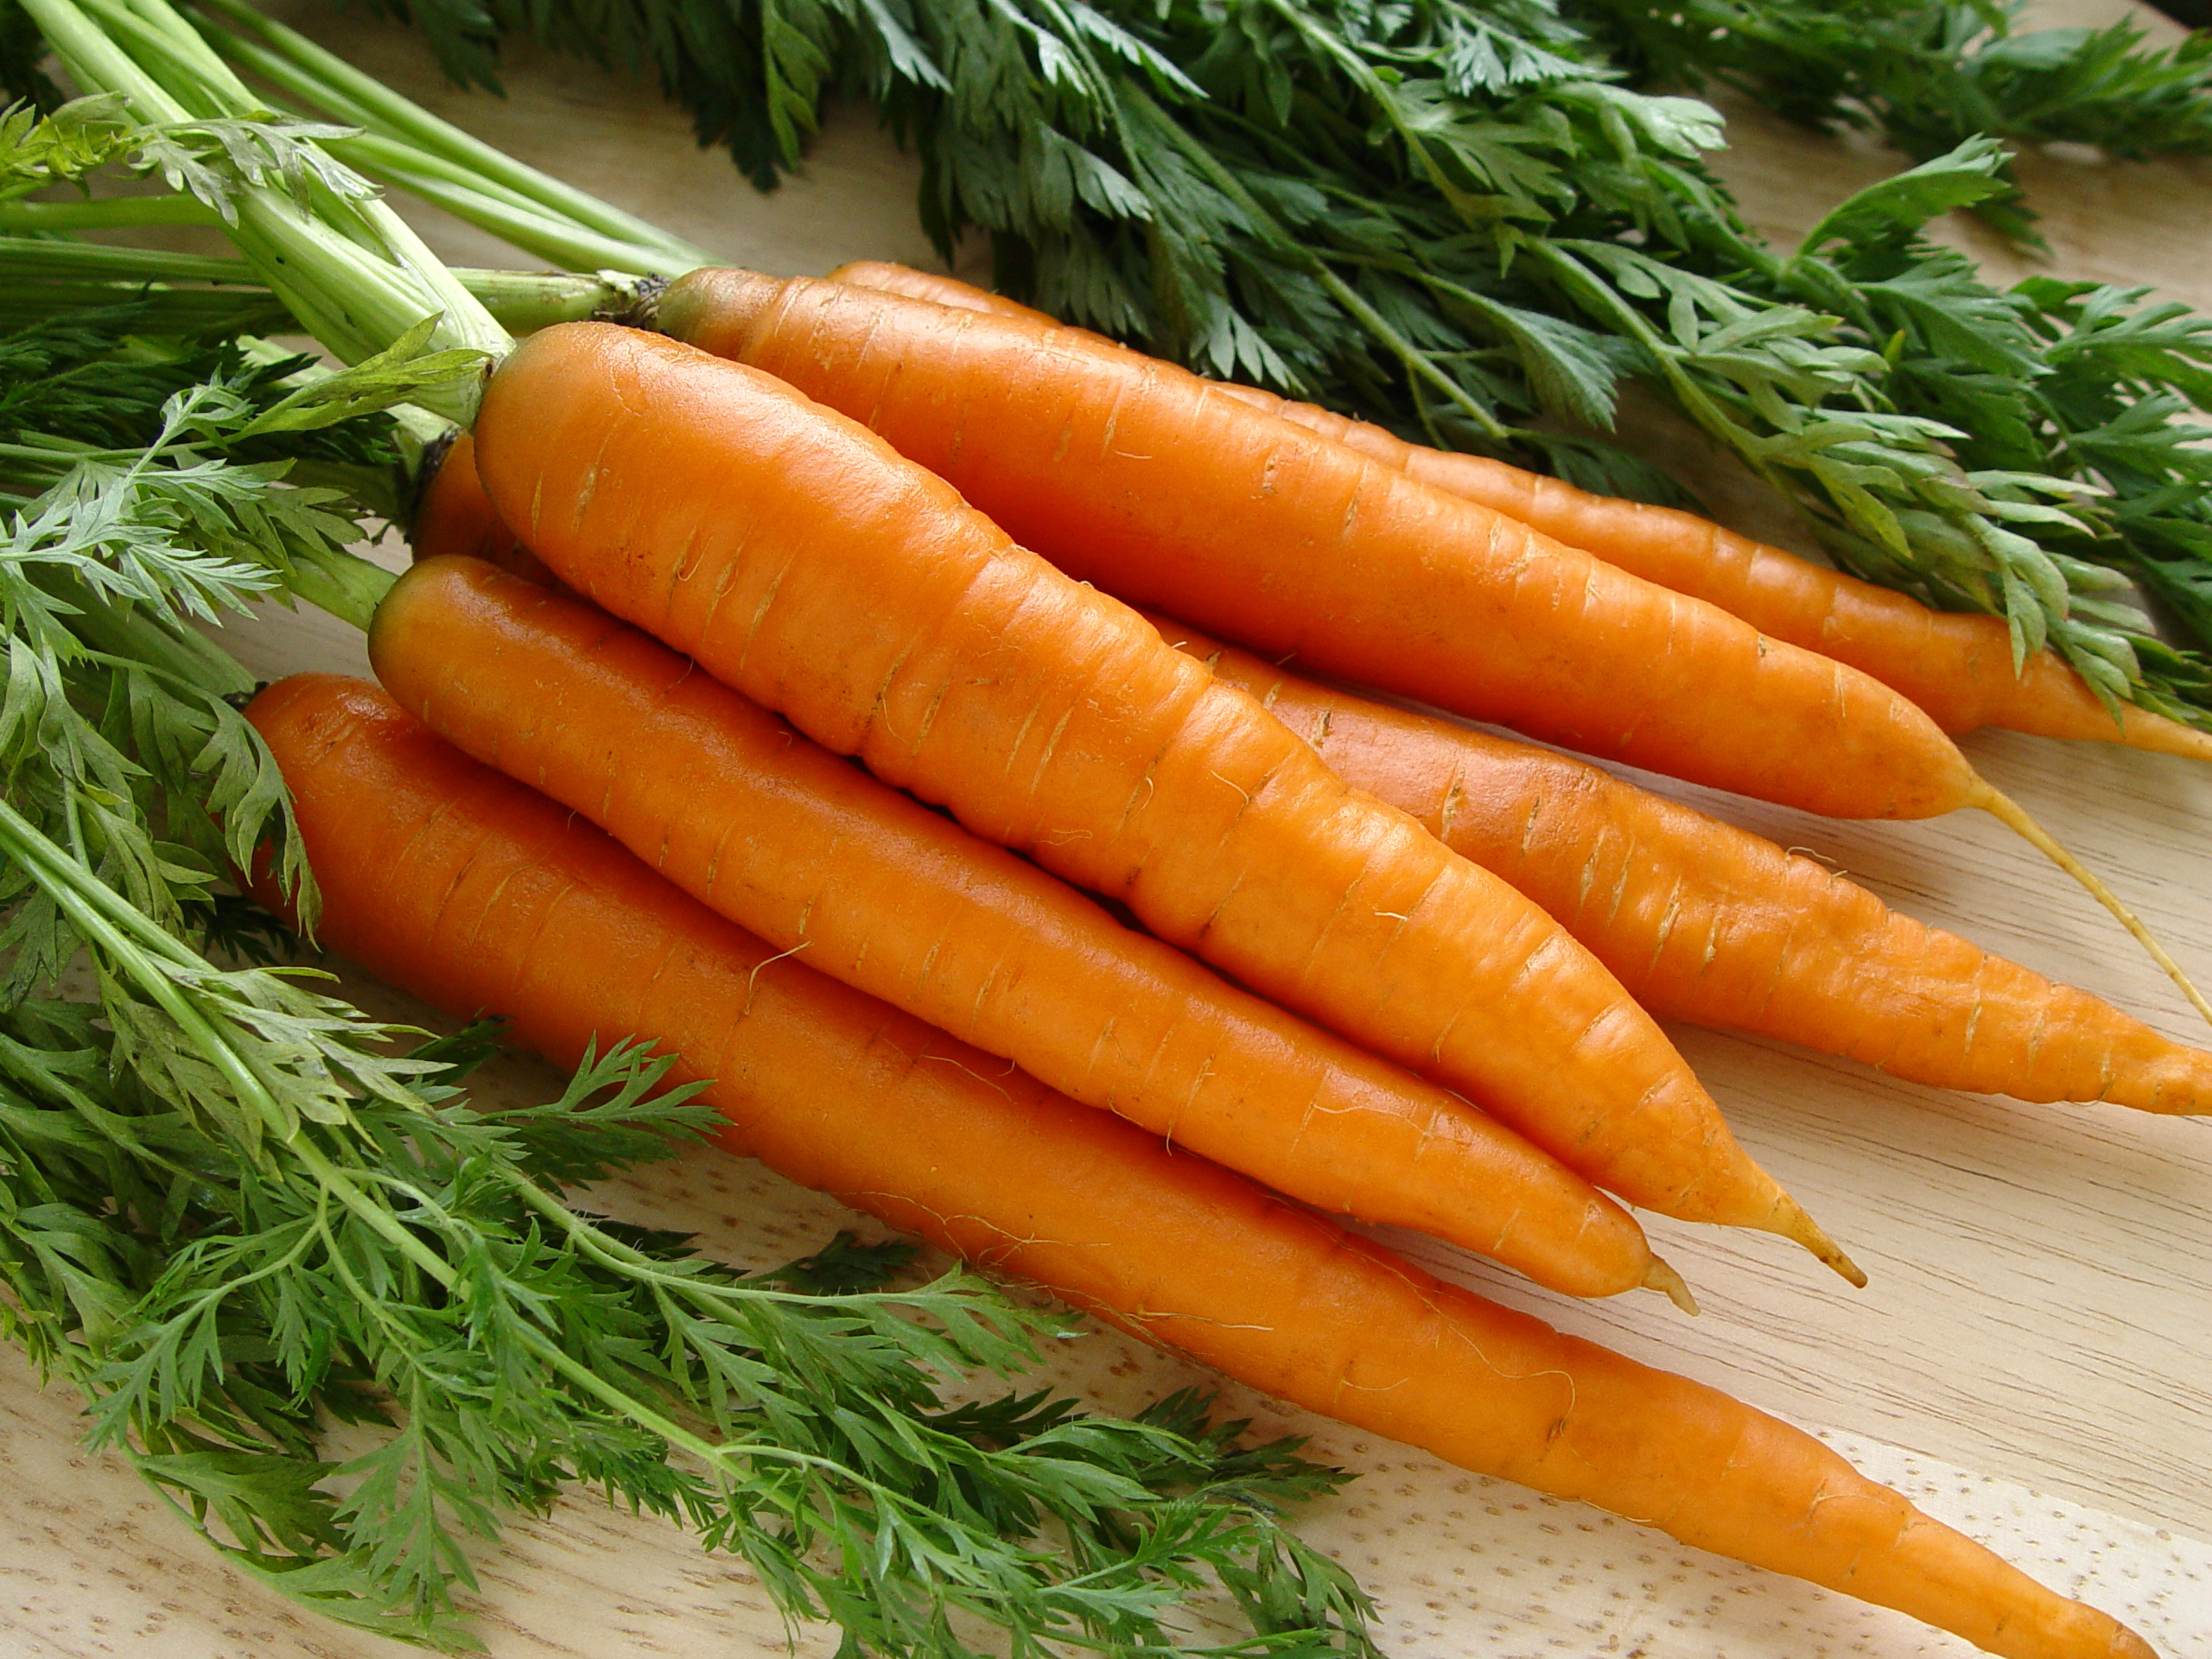 How many calories in carrots 25